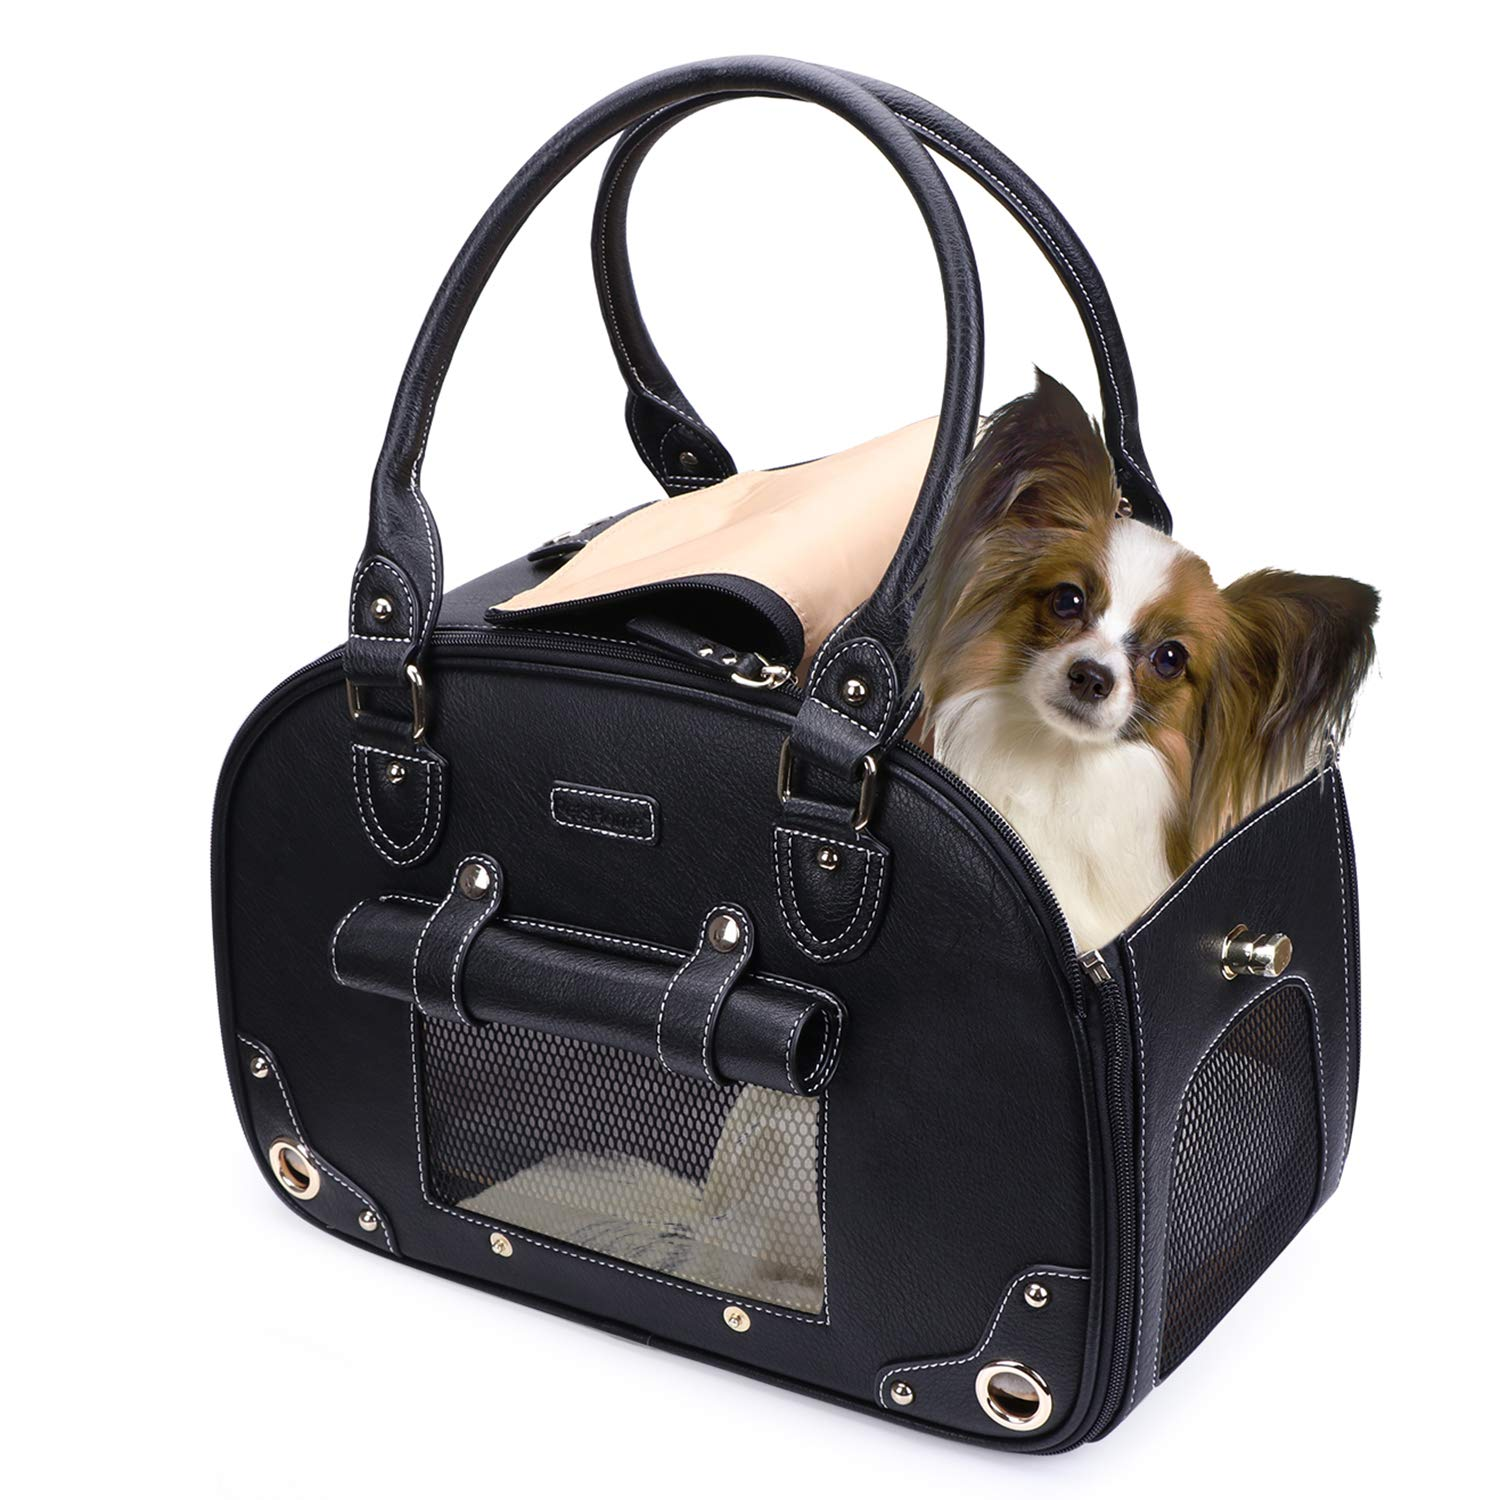 PetsHome Dog Carrier, Pet Carrier, Cat Carrier, Foldable Waterproof Premium Leather Pet Purse Portable Bag Carrier for Cat and Small Dog Home Outdoor